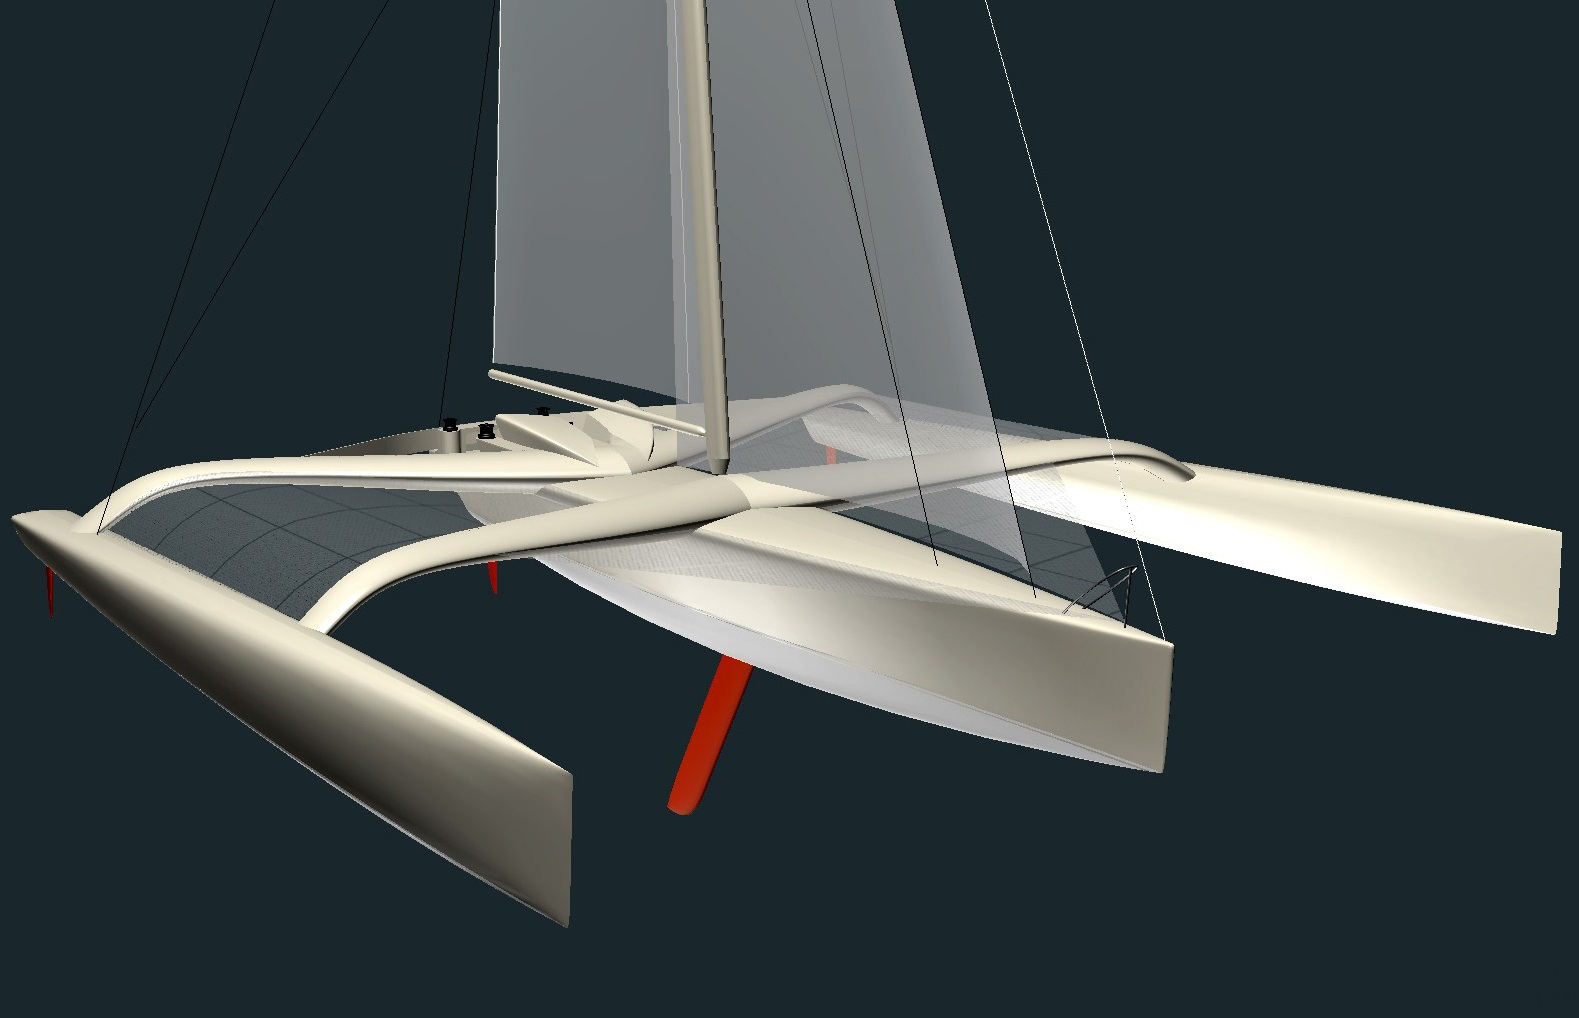 This is the preliminary engineering drawing for the main hull of a Multi 50 racing trimaran by Owen Clarke Design. OC are better known as designers of racing monohulls but began their design career in the multihull world and are supporters and fans of the Multi50 Class.